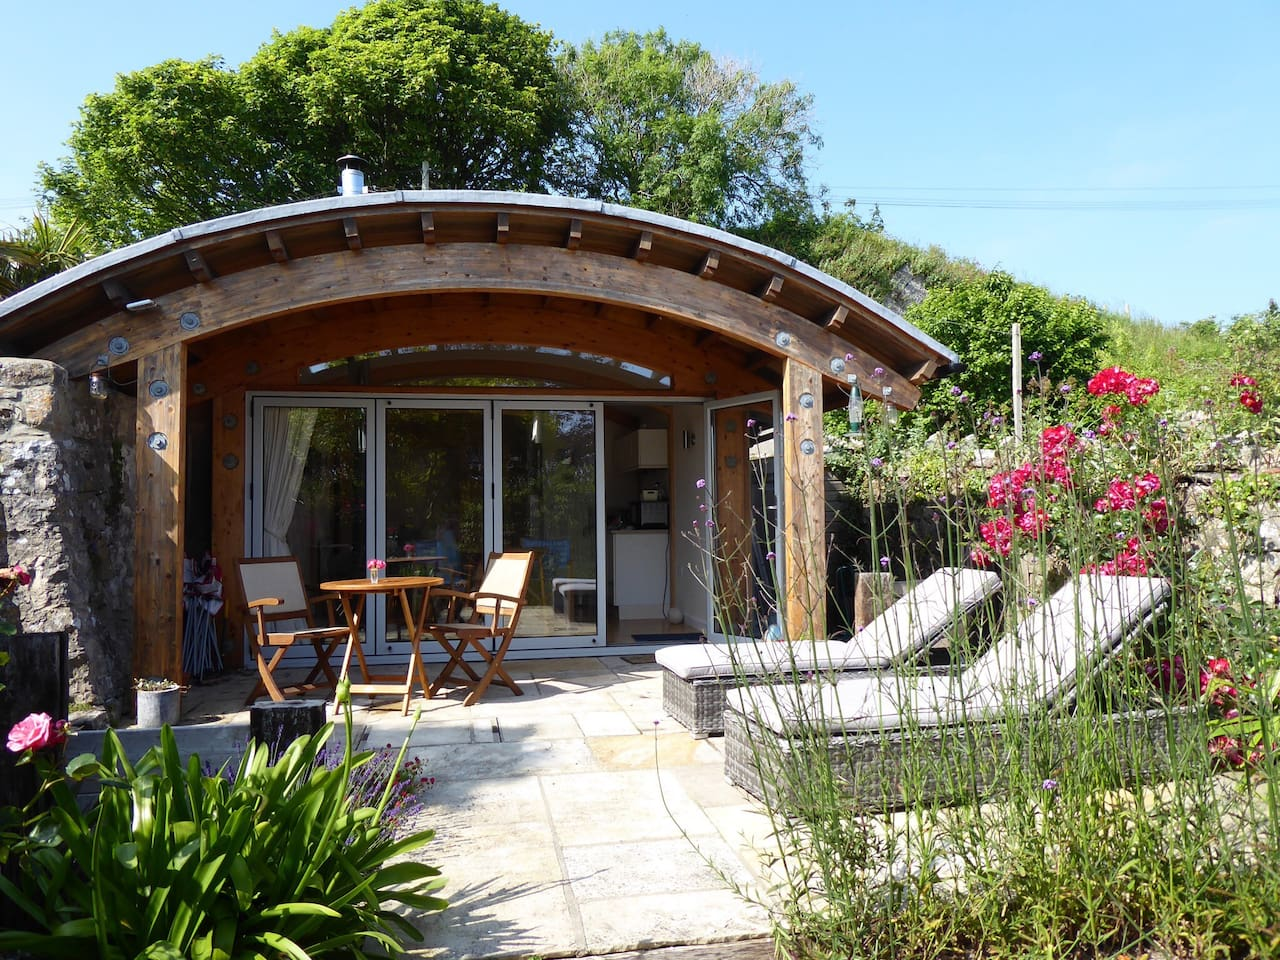 The Sea Breeze Beach House ( Eco Coastal Cabin) in its own south facing private walled garden a seven minute stroll to the beach and the stunning Pembrokeshire Coast in the charming coastal village of Manorbier, 15 minutes drive away fromTenby.